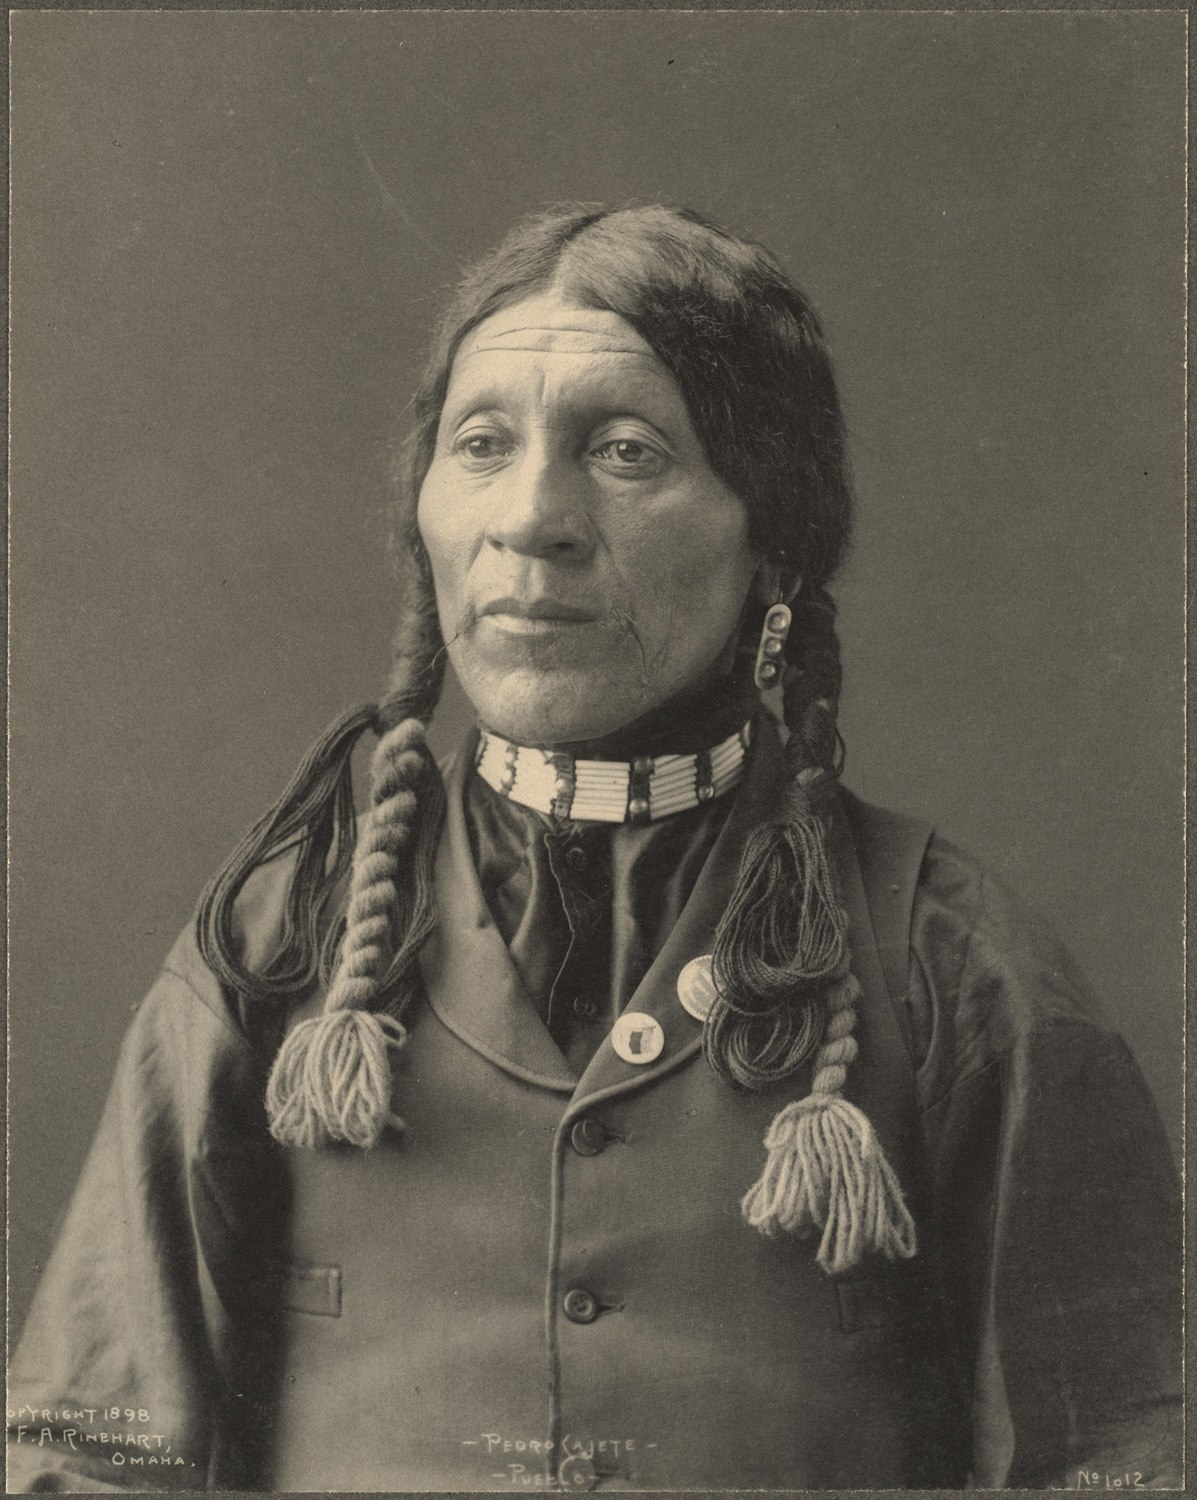 Pedro Cajete, Pueblo, 1899. (Photo by Frank A. Rinehart).